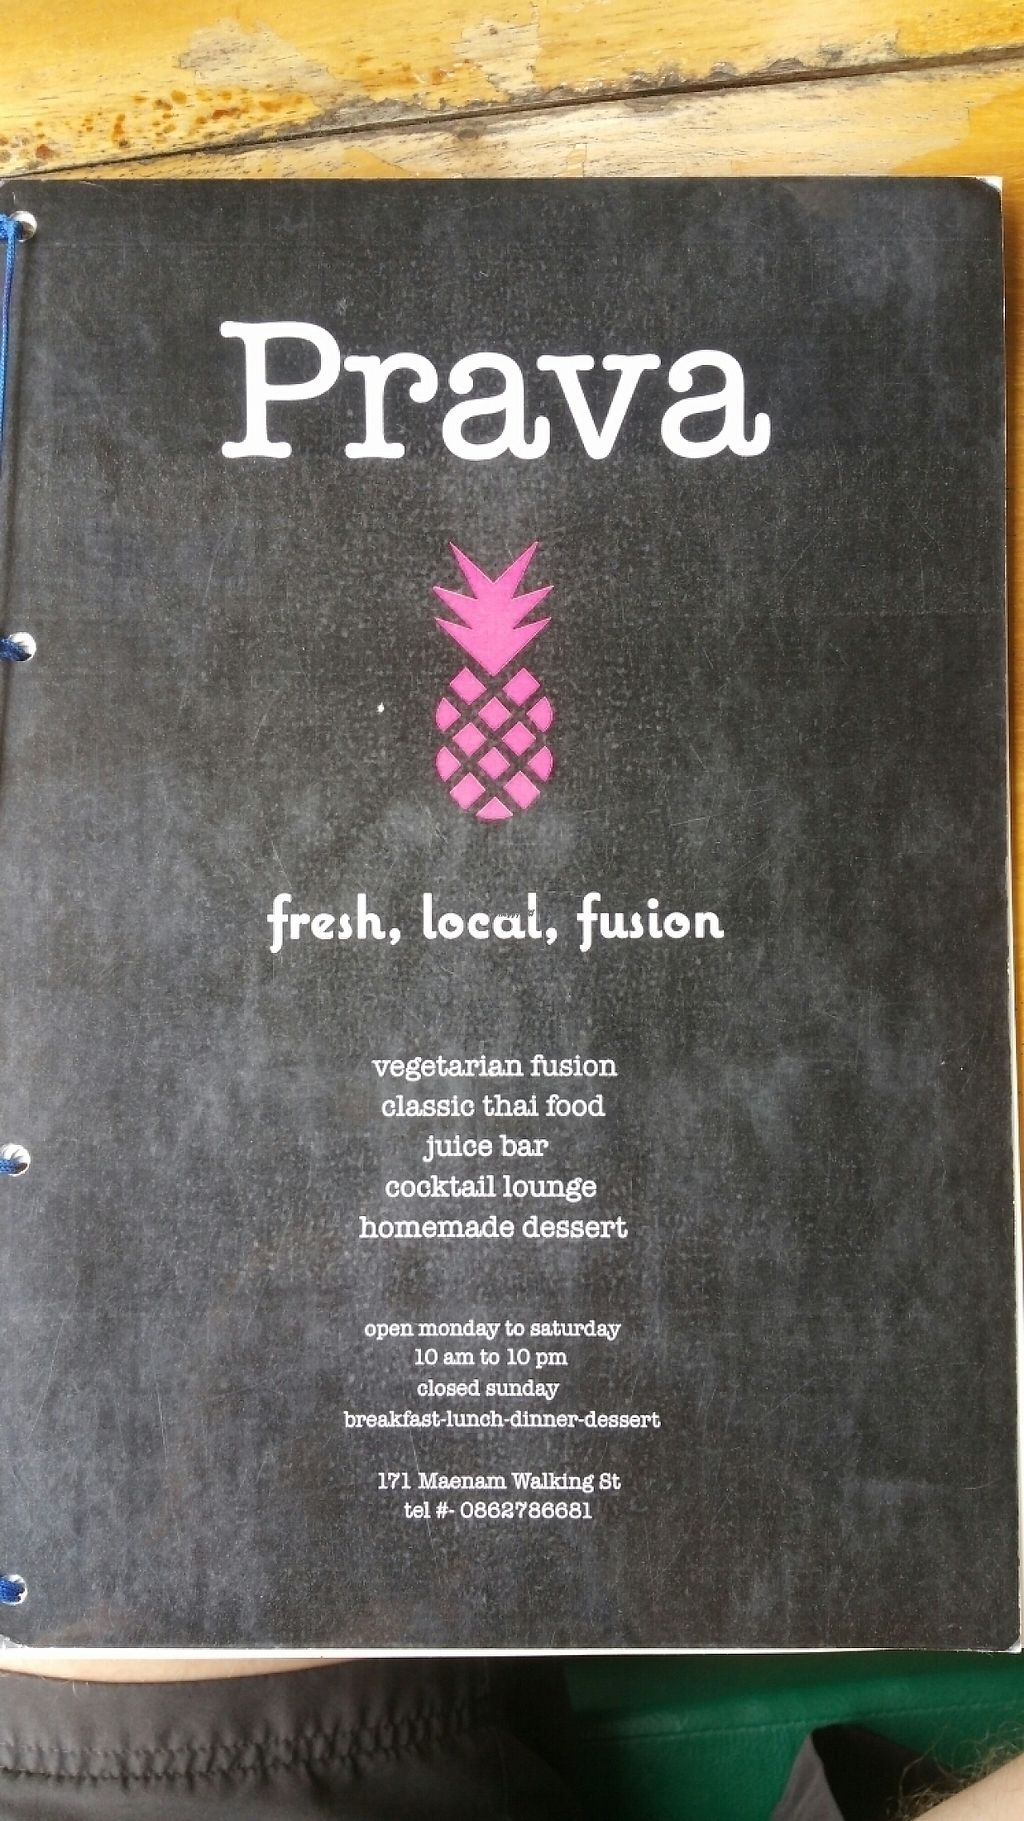 """Photo of Prava Bar  by <a href=""""/members/profile/MMills"""">MMills</a> <br/>Menu Front <br/> December 19, 2016  - <a href='/contact/abuse/image/70530/202870'>Report</a>"""